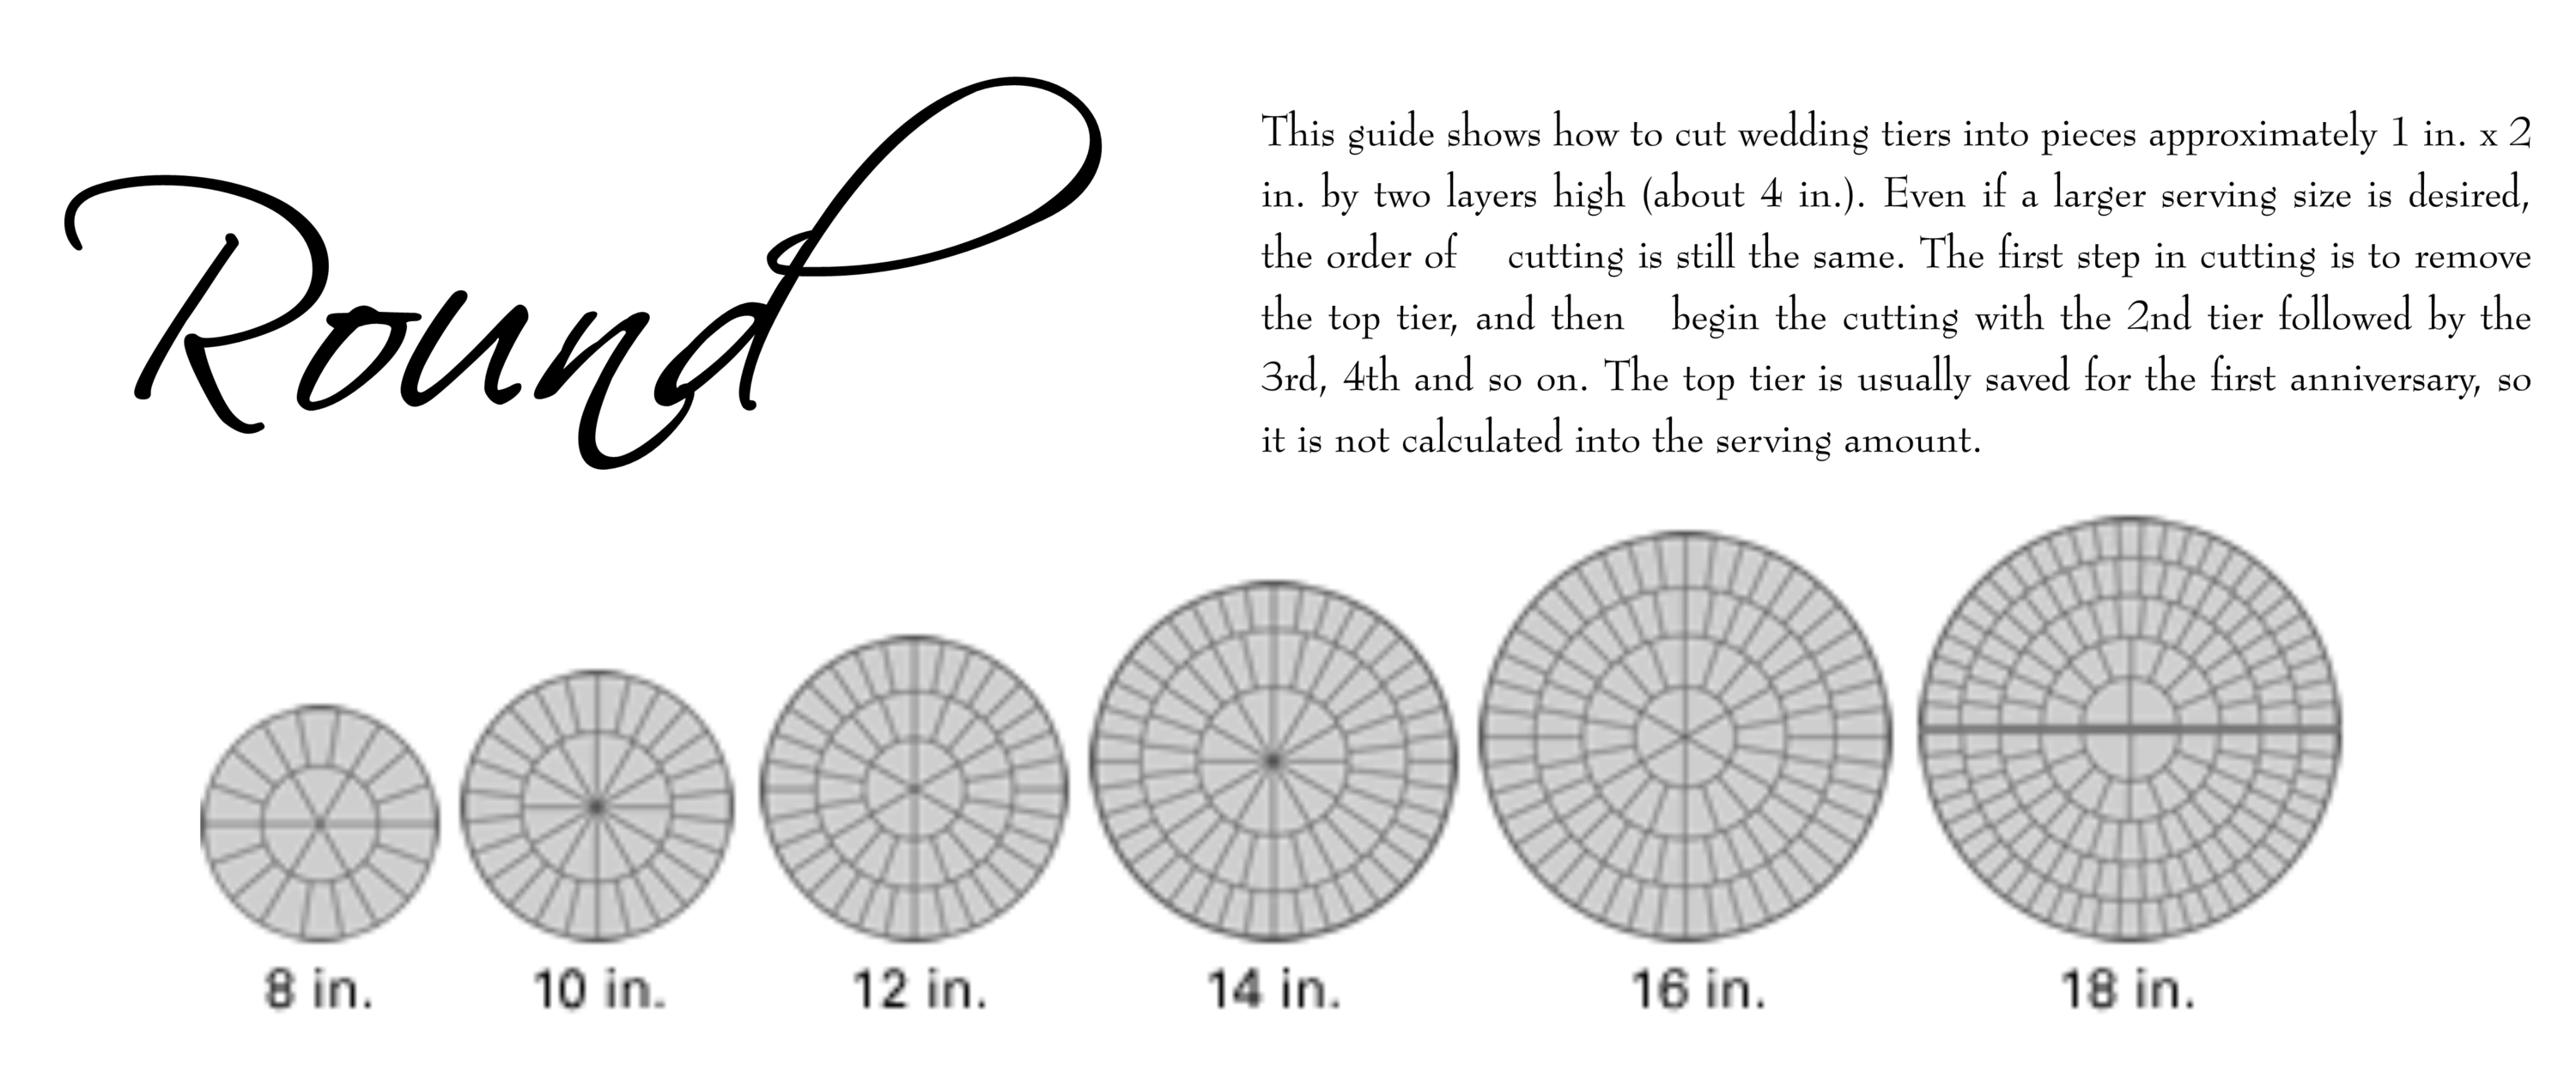 Round tiered cake cutting guide